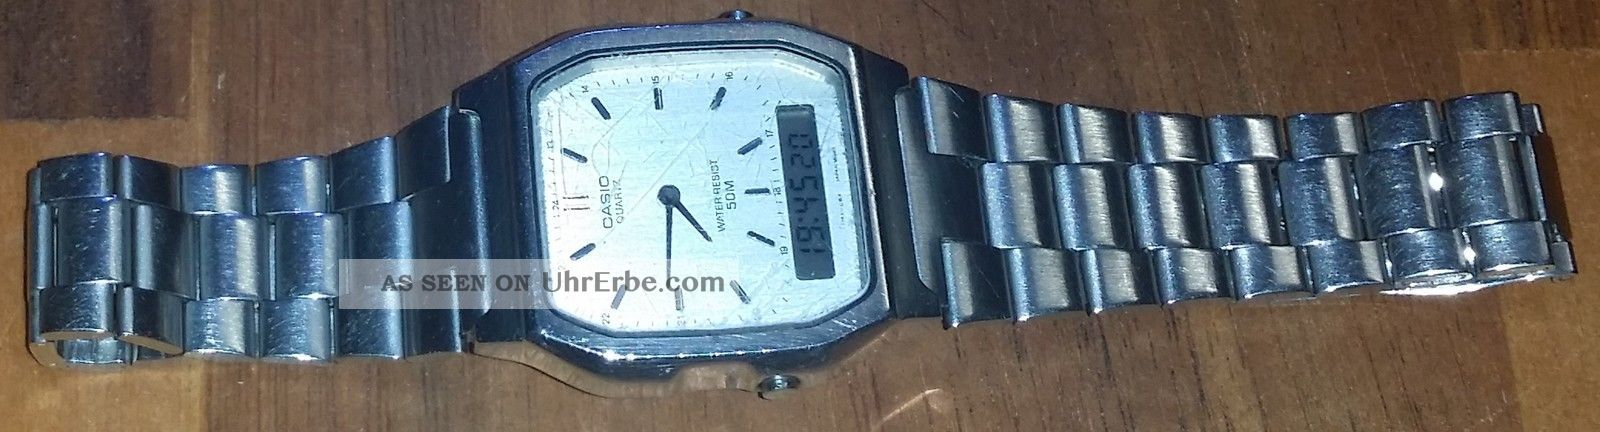 Casio Aq - 224w - All Stainless Steel - Made In Japan - Funktioniert Einwandfrei Armbanduhren Bild